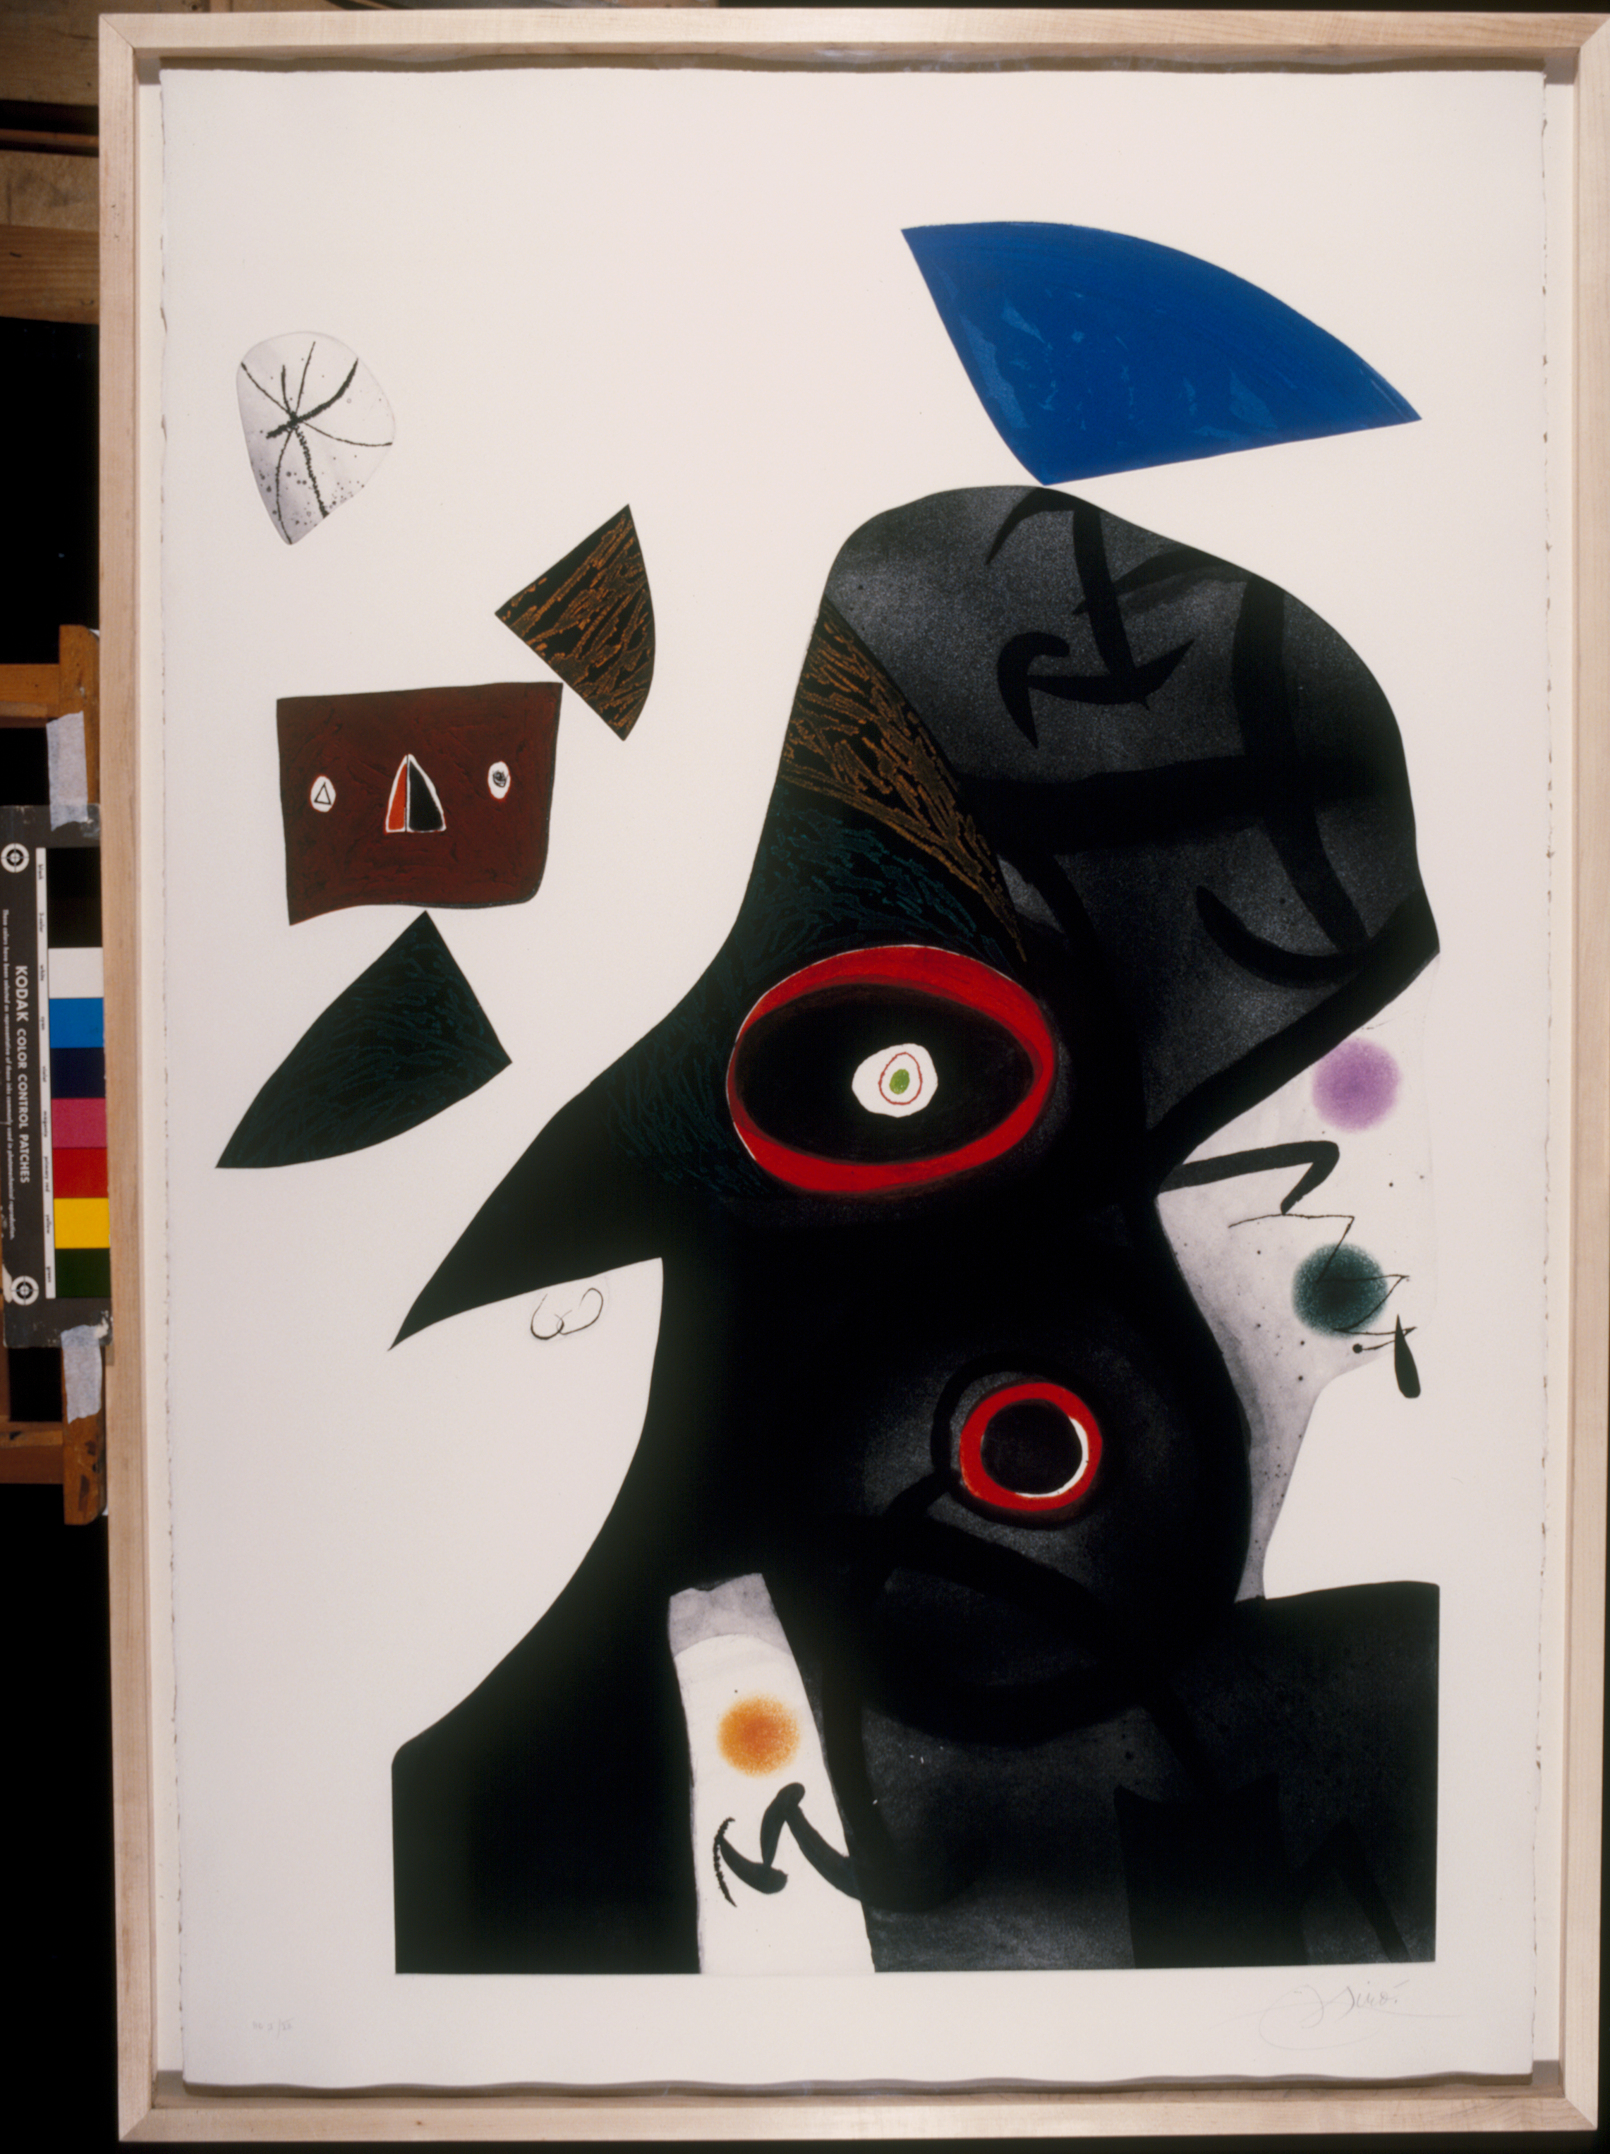 Joan Miró L'egiziana, 1977 Acquaforte, acquatinta e carburo di silicio